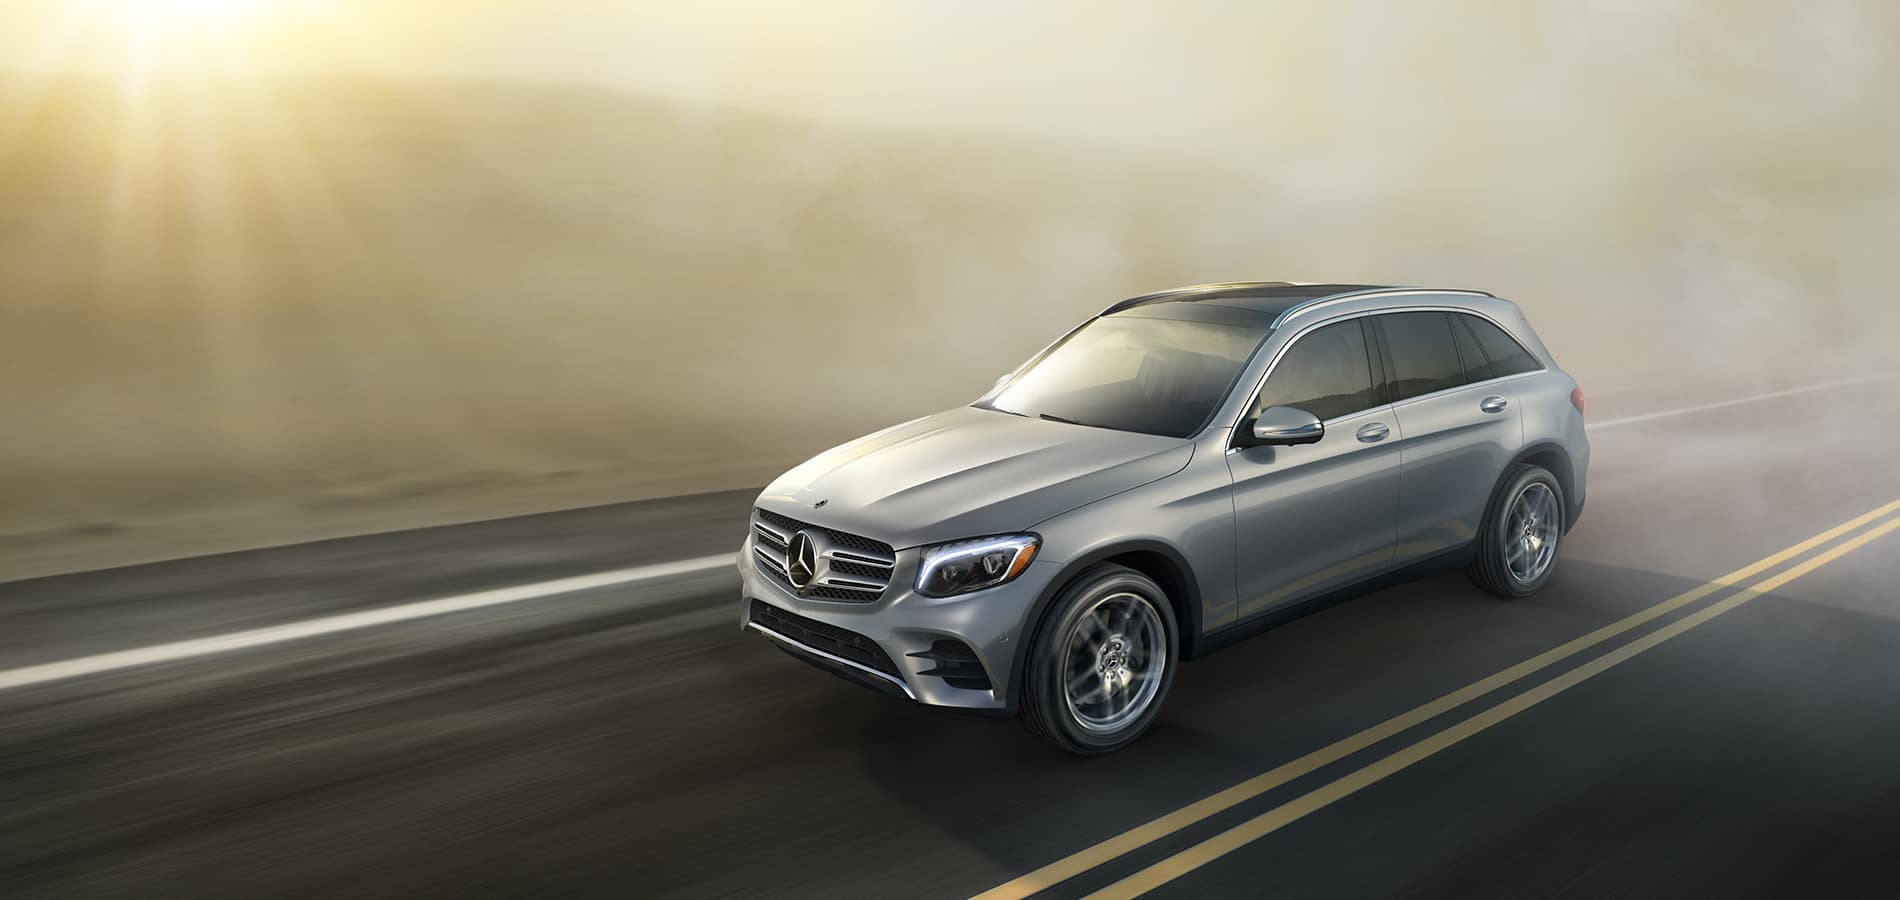 Mercedes-Benz of Princeton in Lawrenceville, NJ | Luxury ...